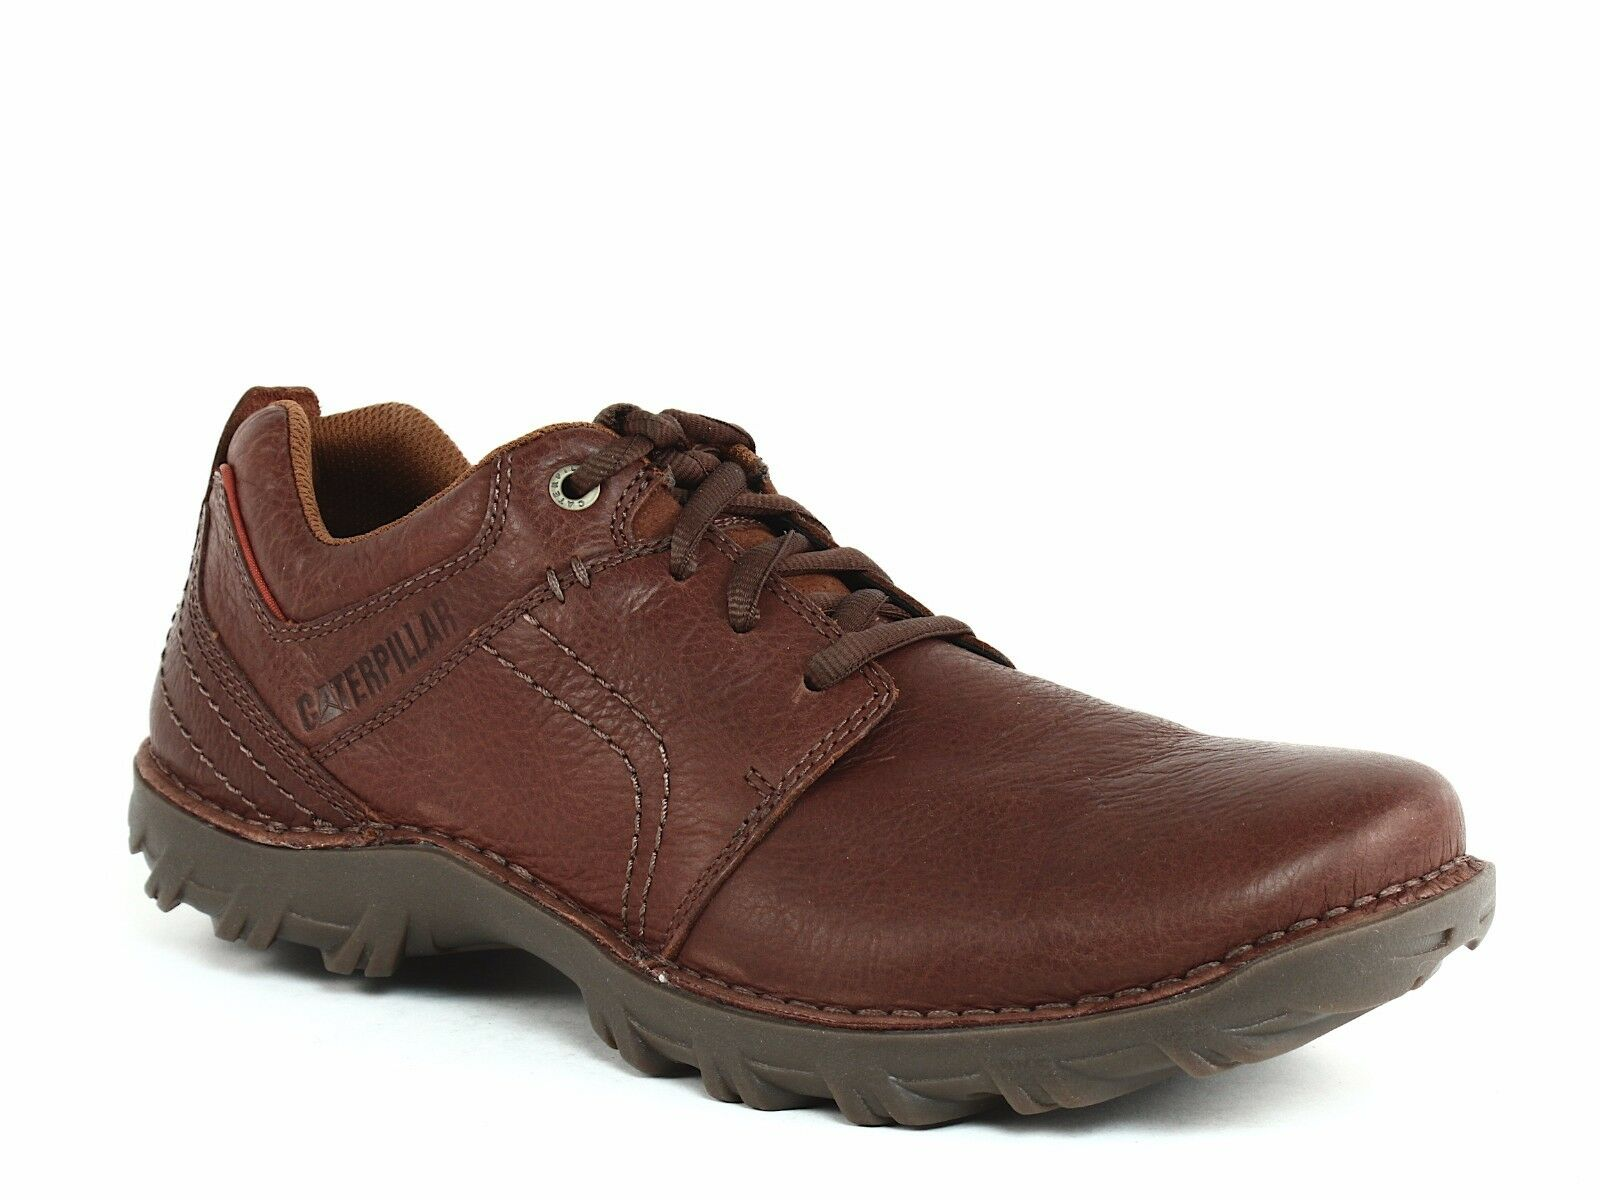 Caterpillar EMERGE Oxford Mens Work Casual Ginger Bread Leather shoes